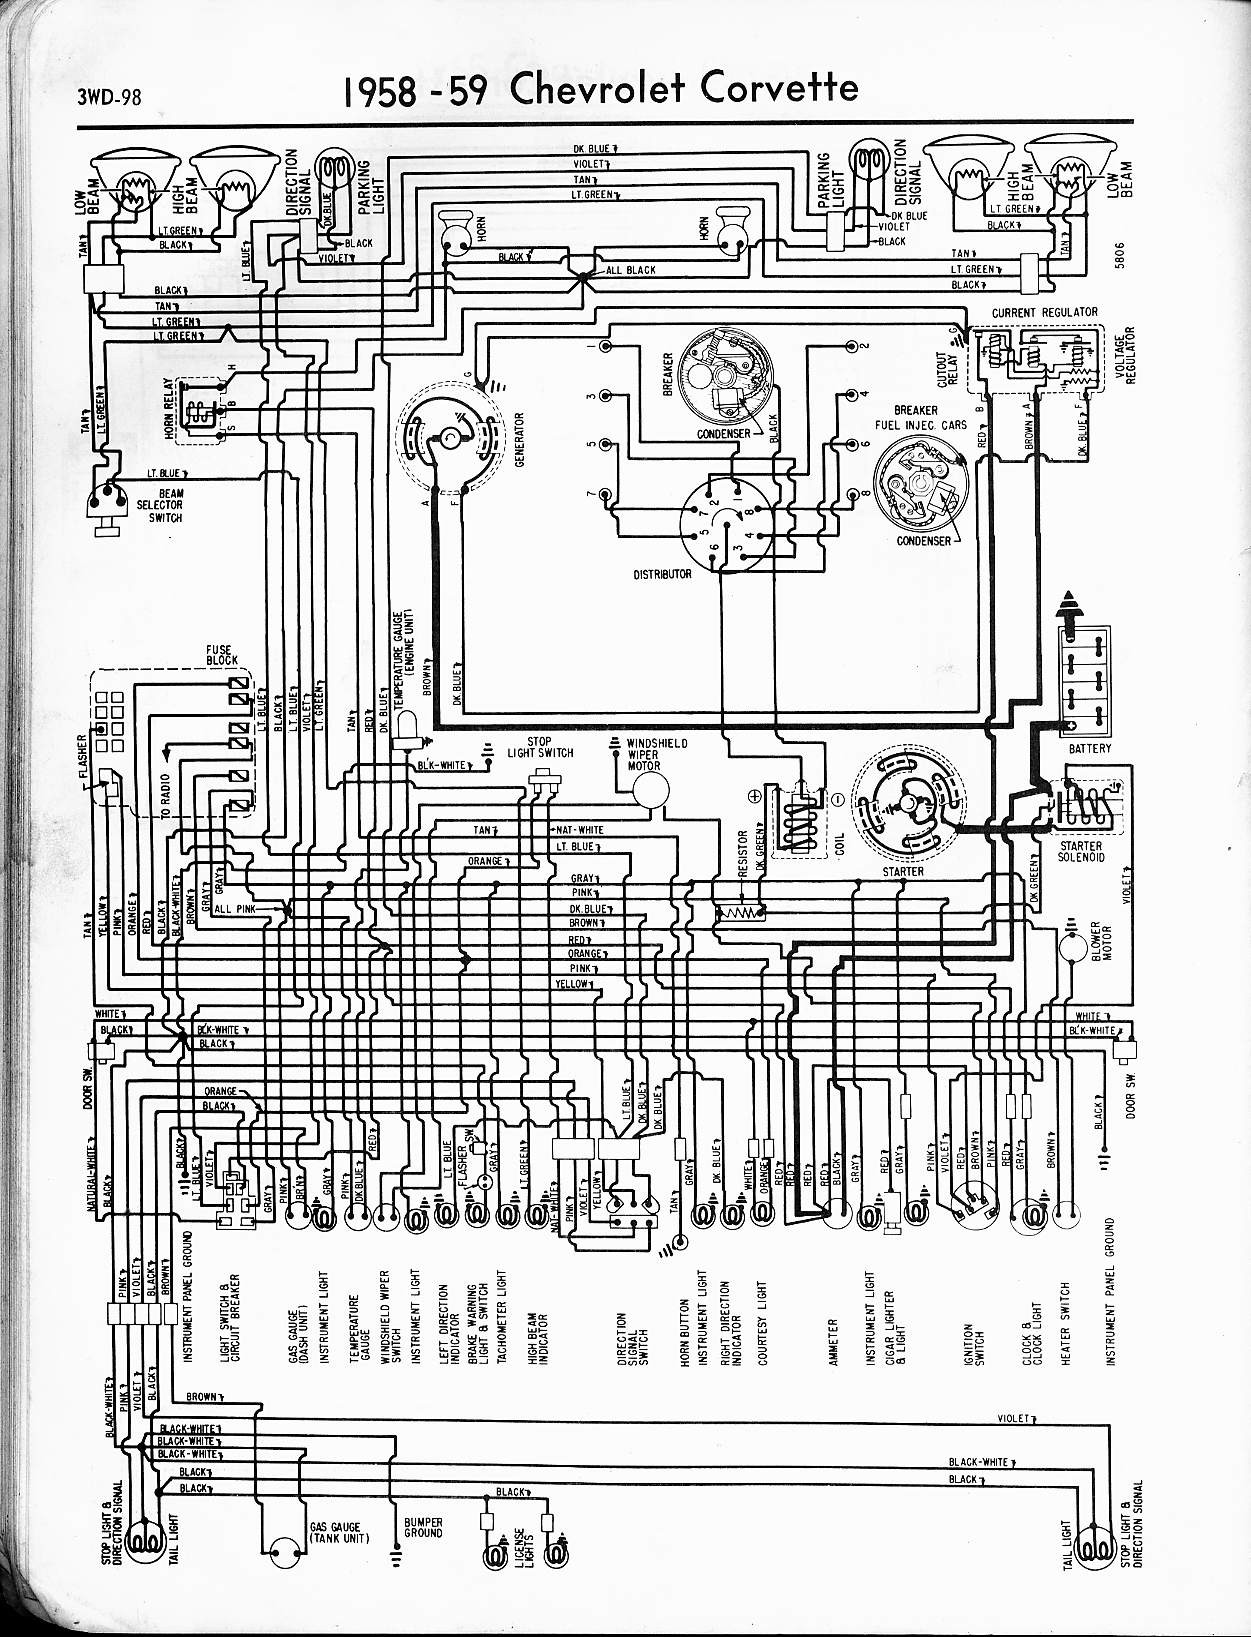 1958 corvette wiring diagram wiring diagram rh blaknwyt co 1967 chevy c10 engine wiring diagram 67 chevy pickup wiring diagram